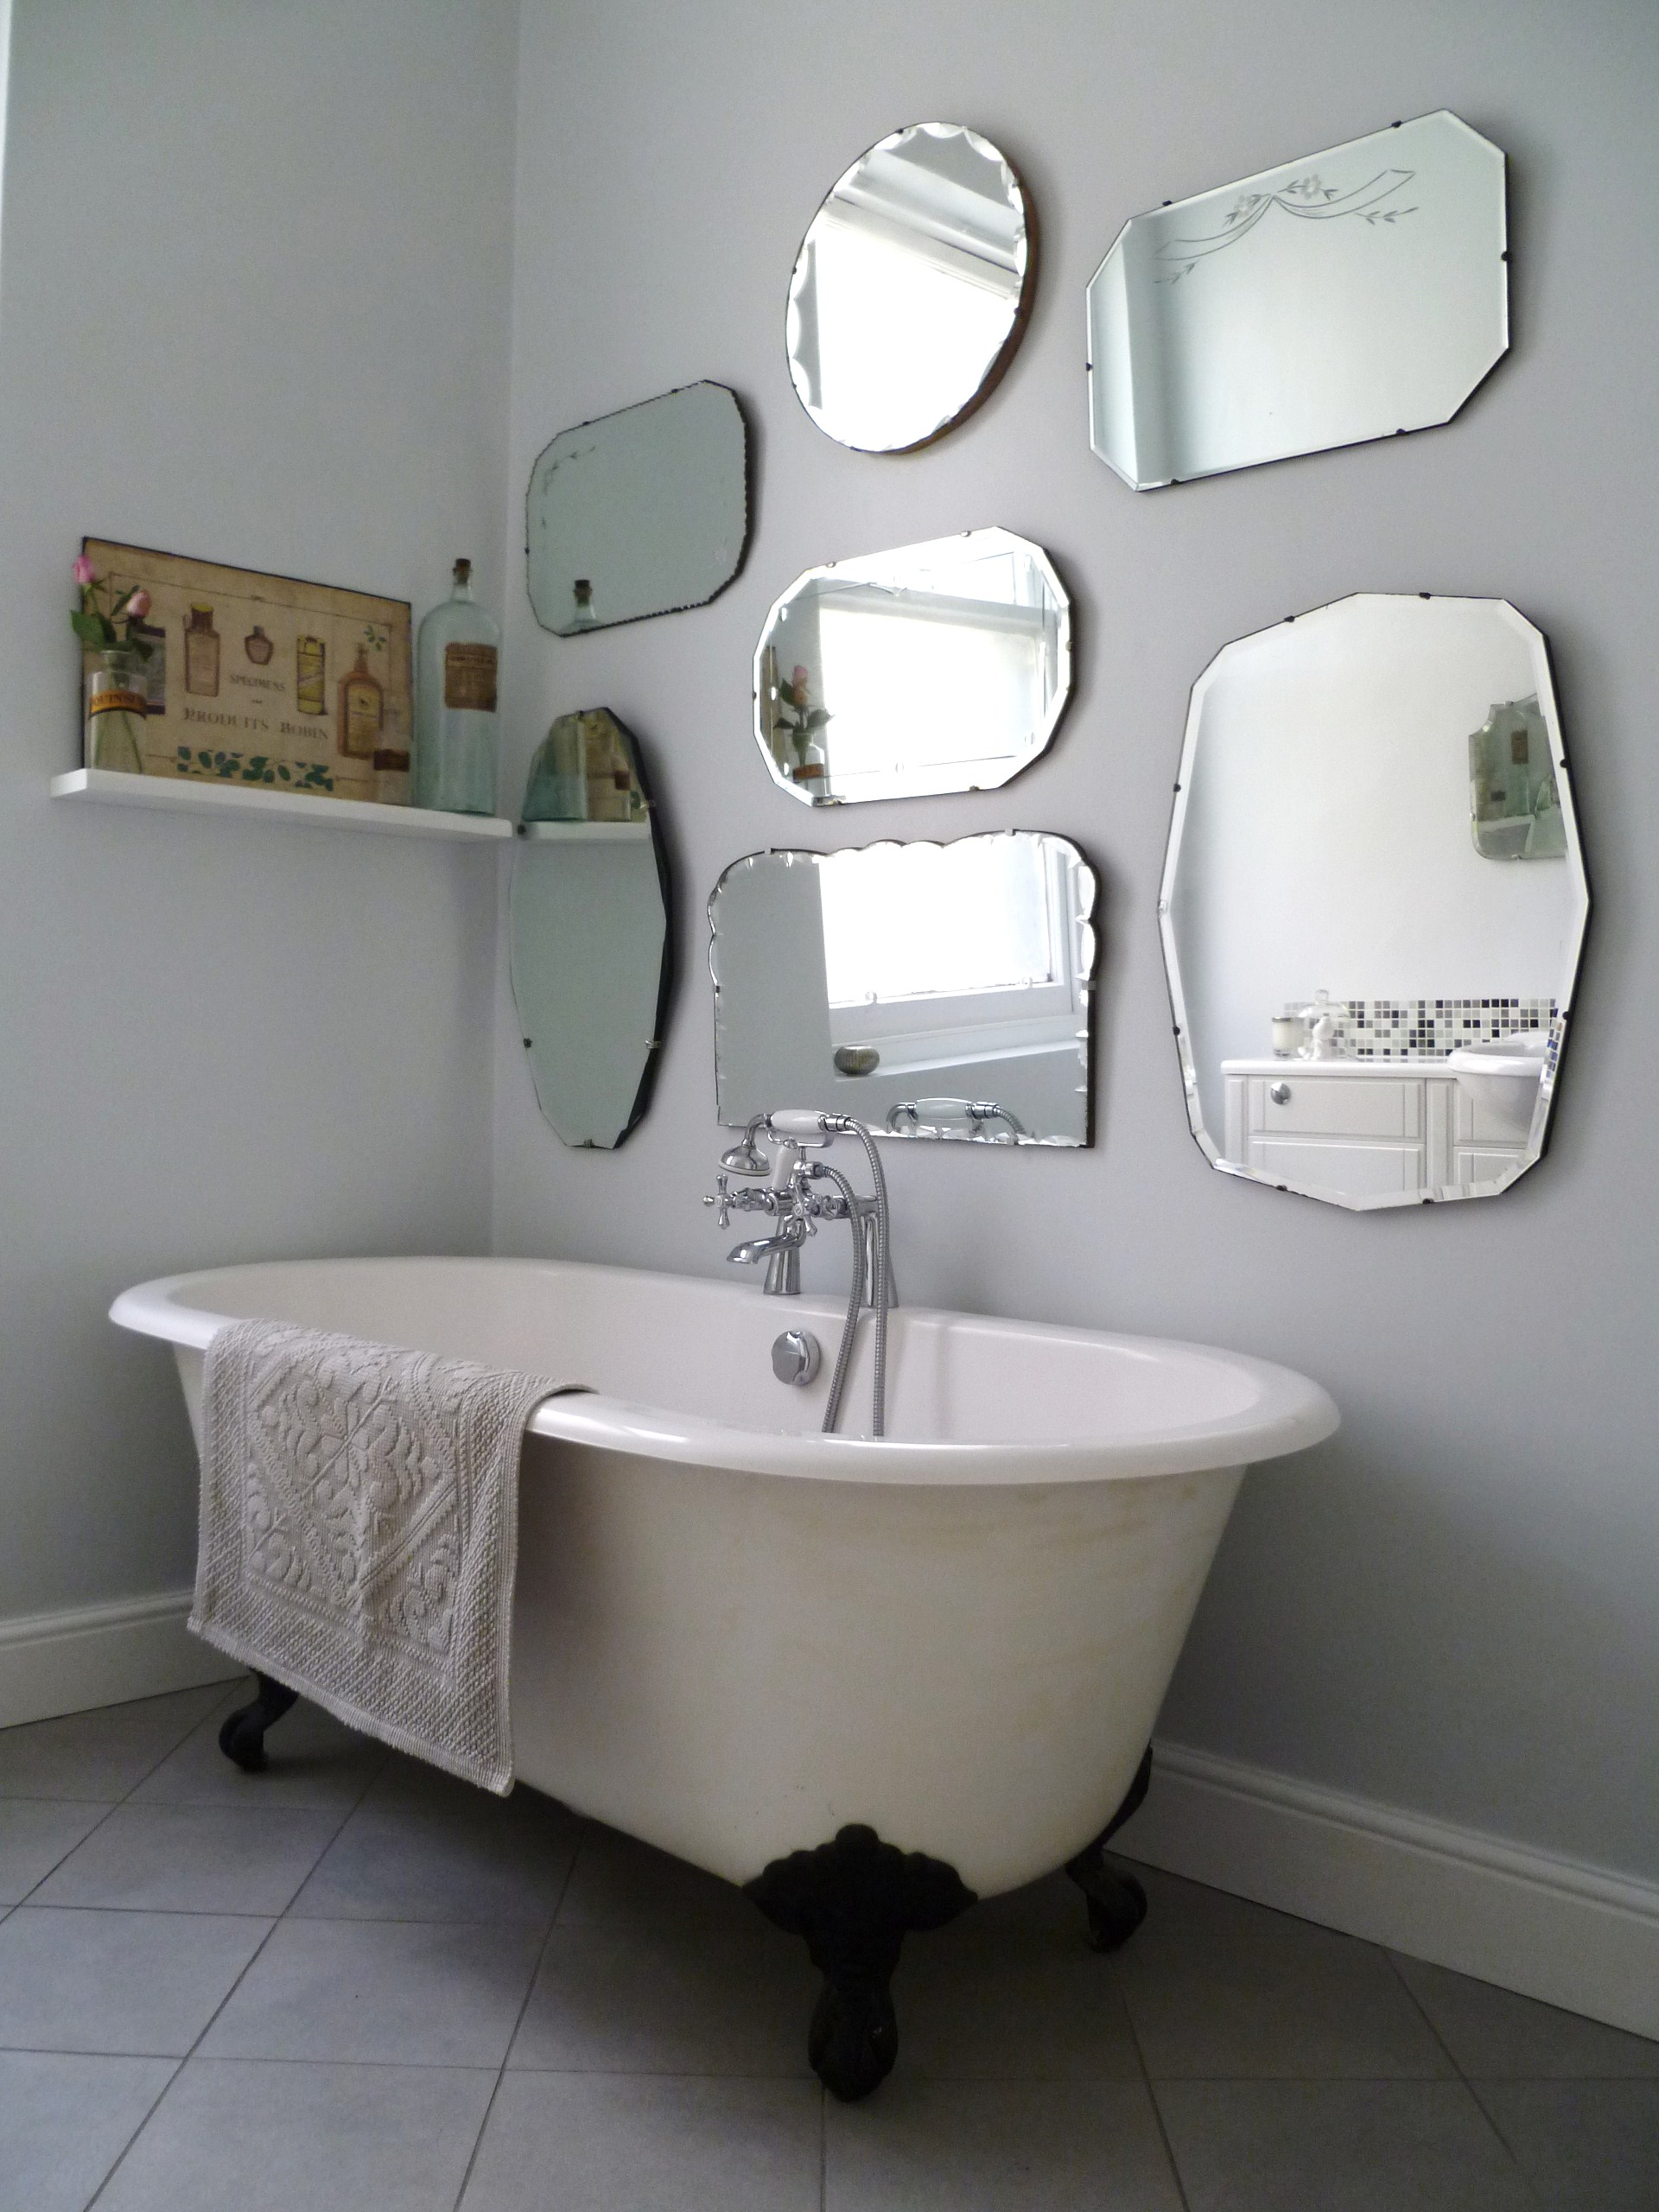 How to hang a display of vintage mirrors decorator 39 s for What to hang on bathroom walls